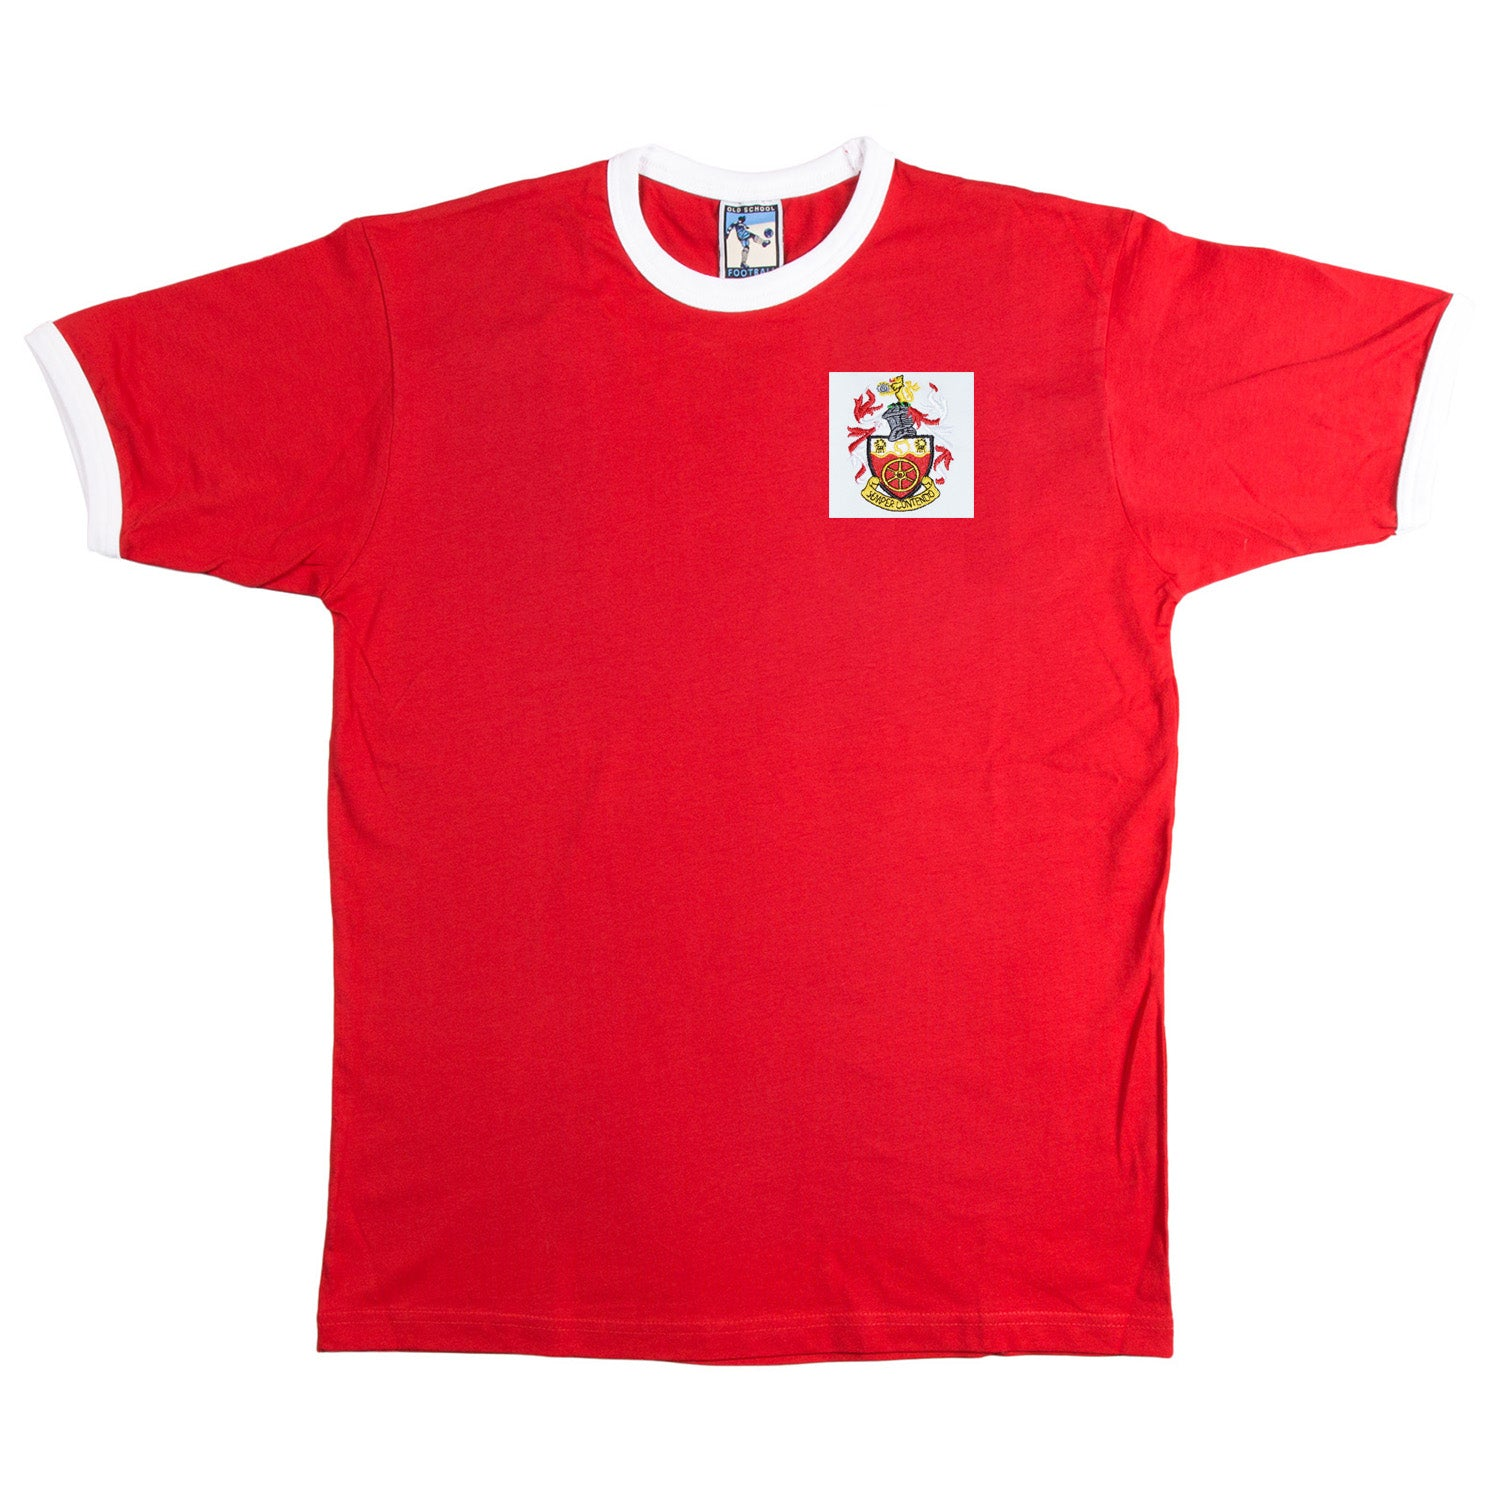 Crewe Alexandra Retro Football T Shirt 1960s - T-shirt